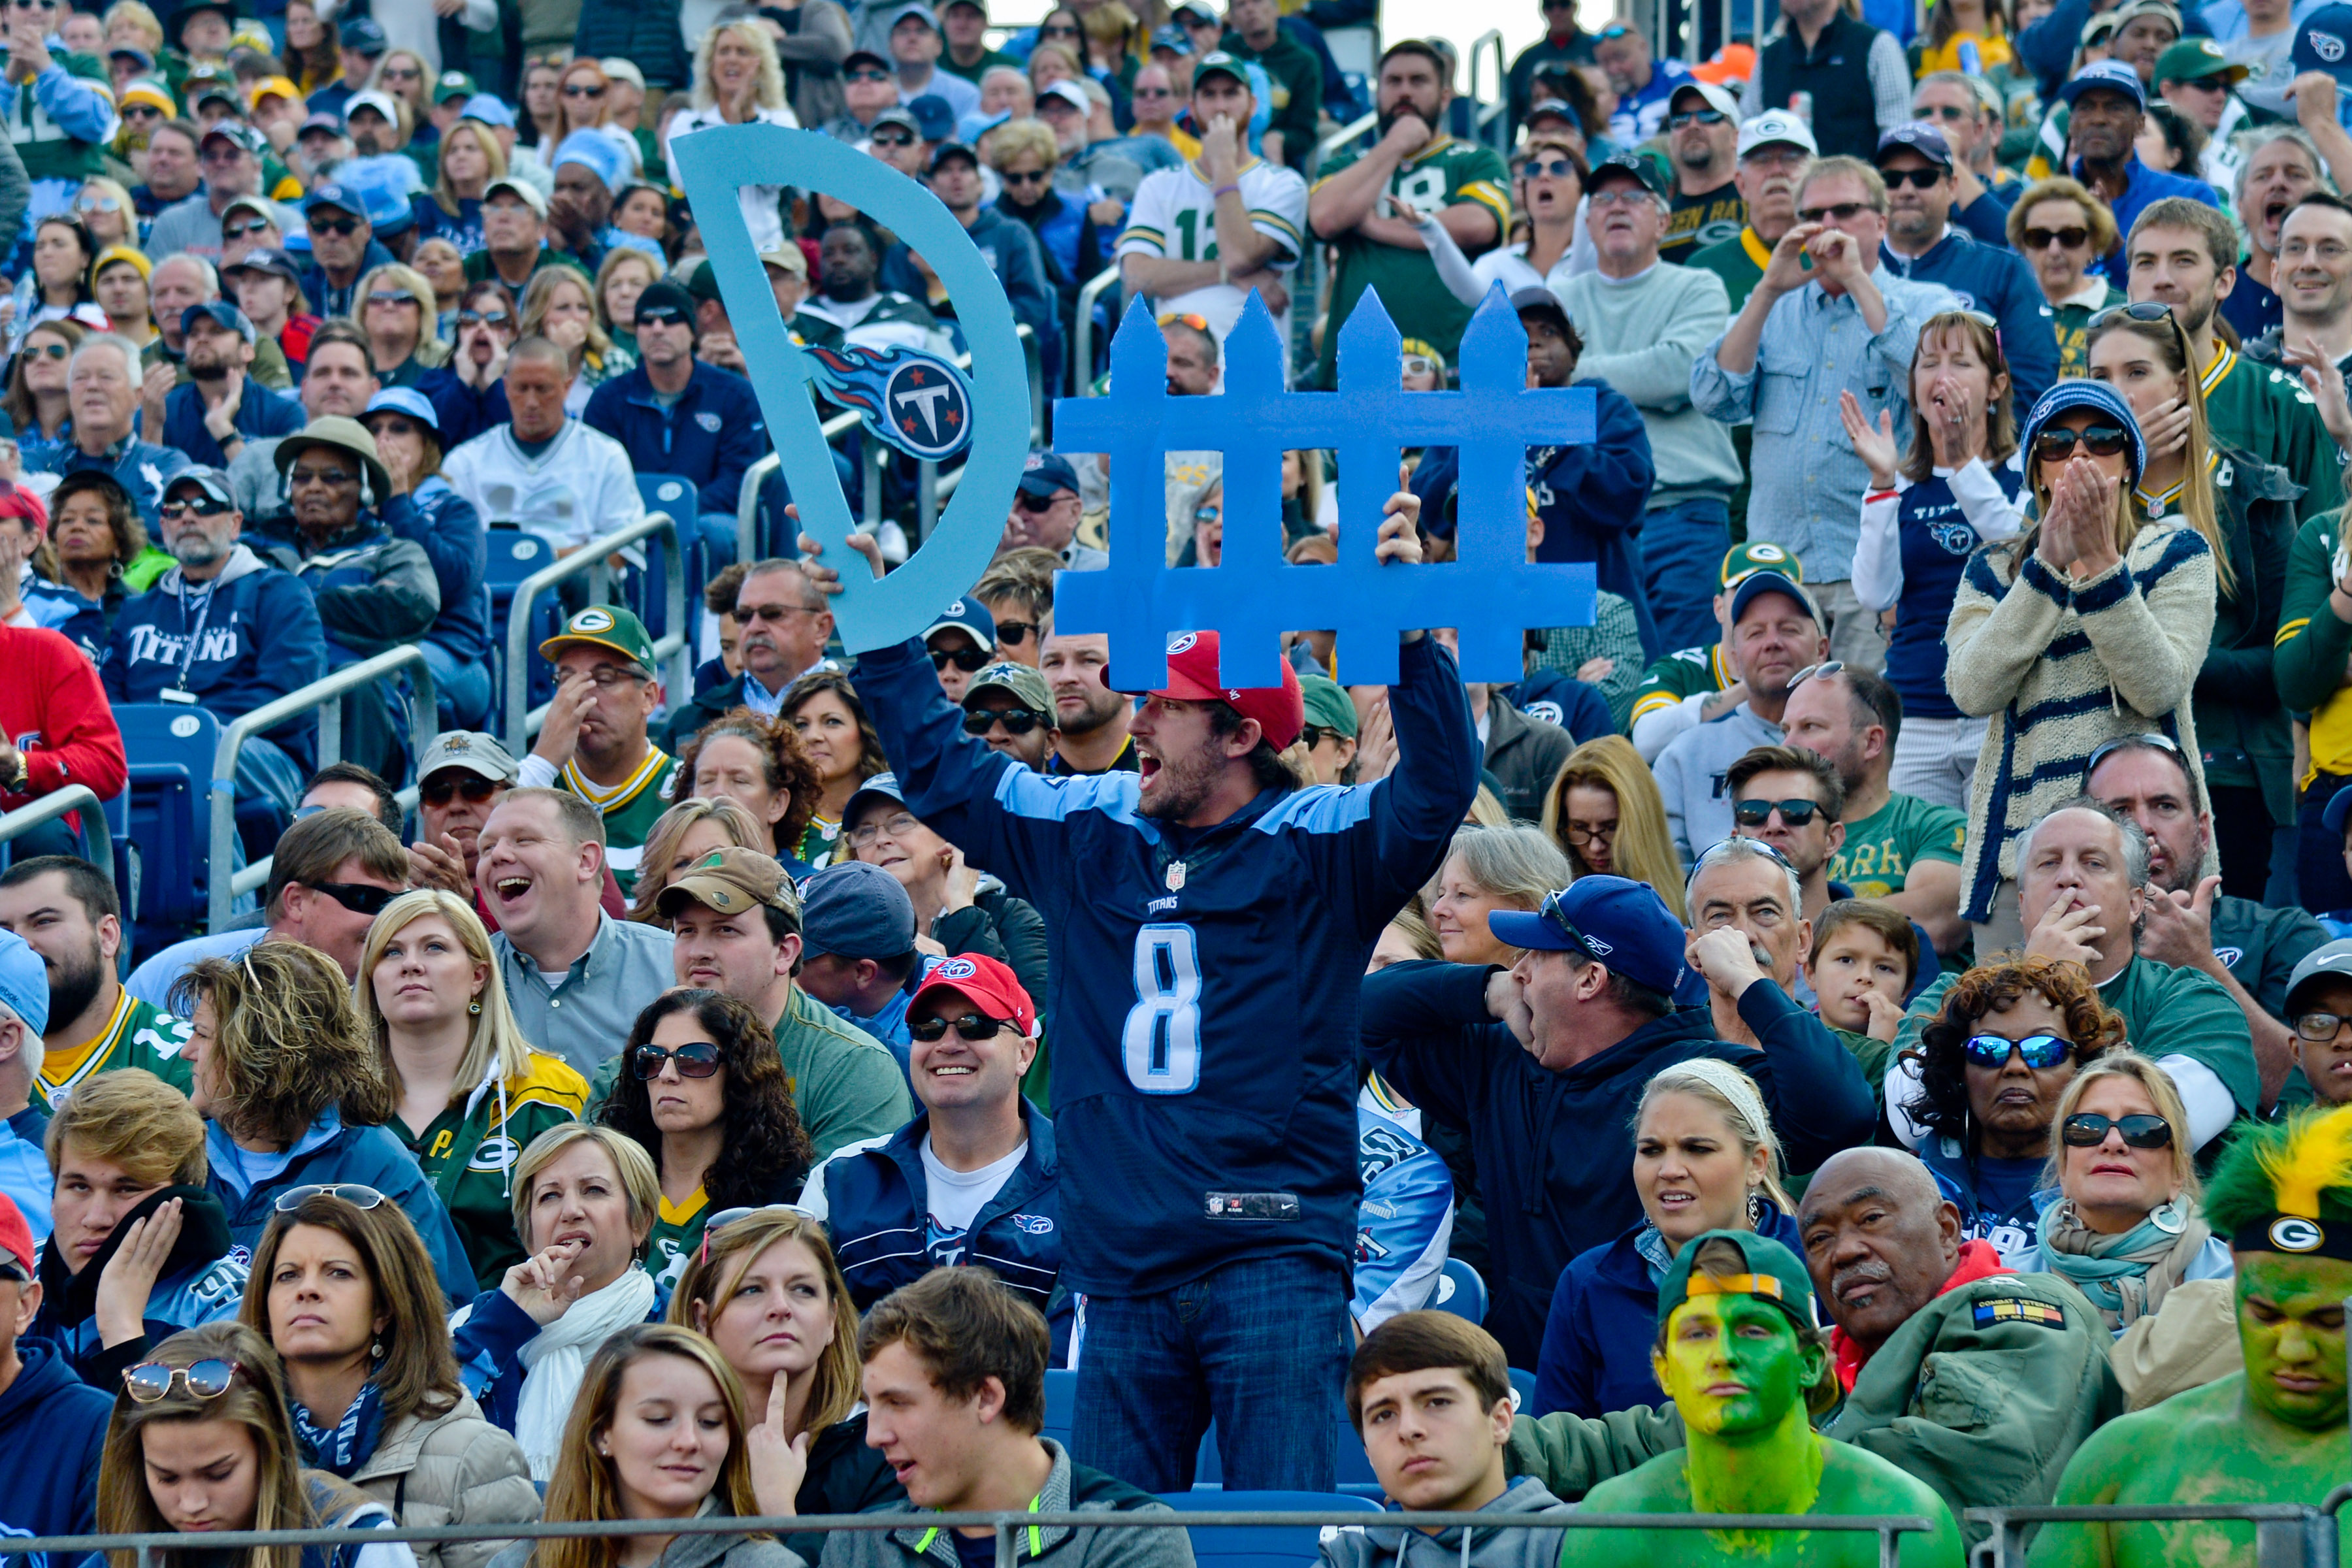 9675131-nfl-green-bay-packers-at-tennessee-titans